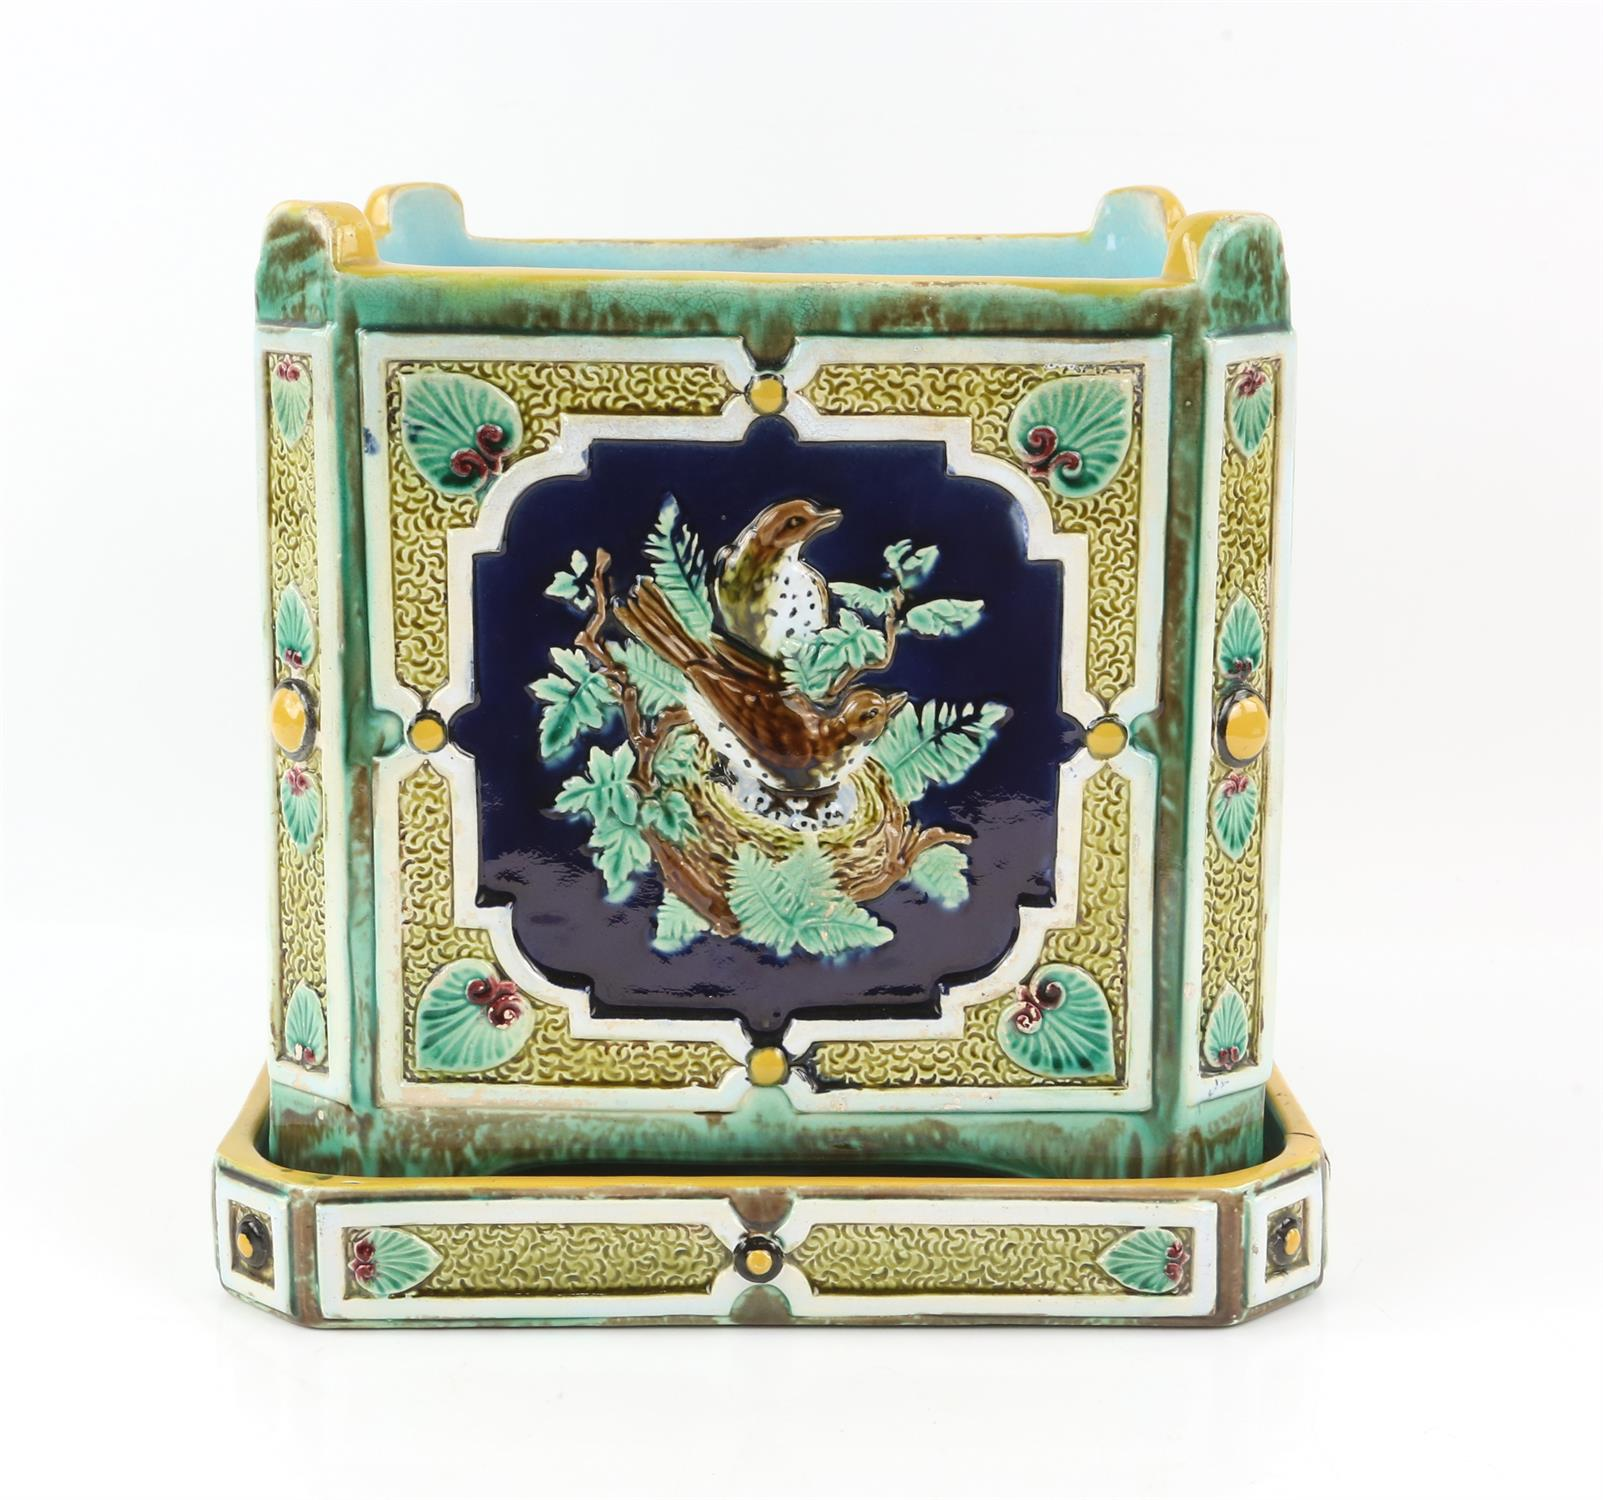 Minton style planter on stand, decorated with pairs of birds on nests. 22cm High, 21.5cm wide, 21. - Image 3 of 10